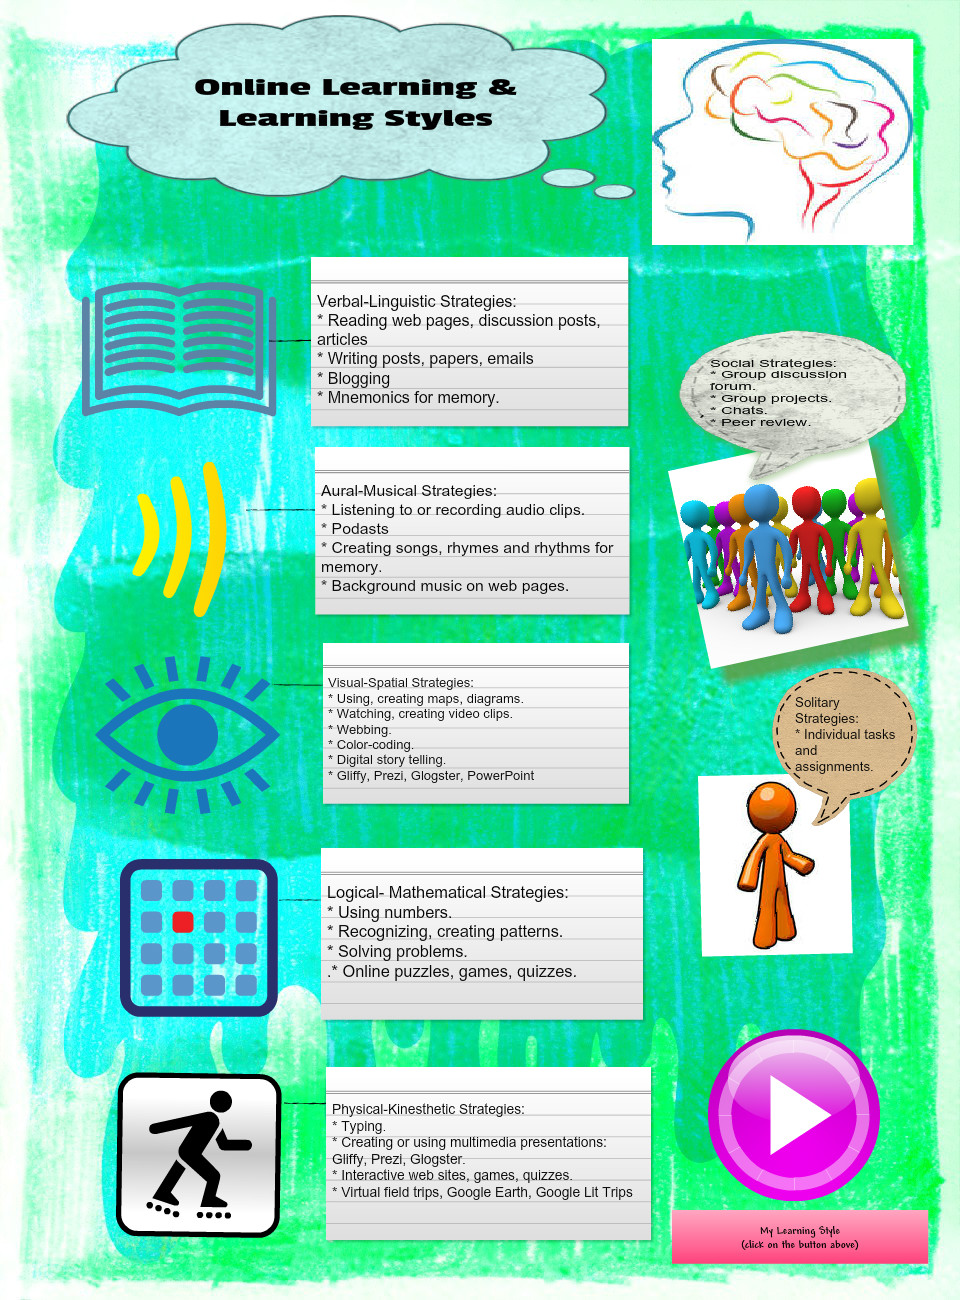 Online Learning and Learning Styles